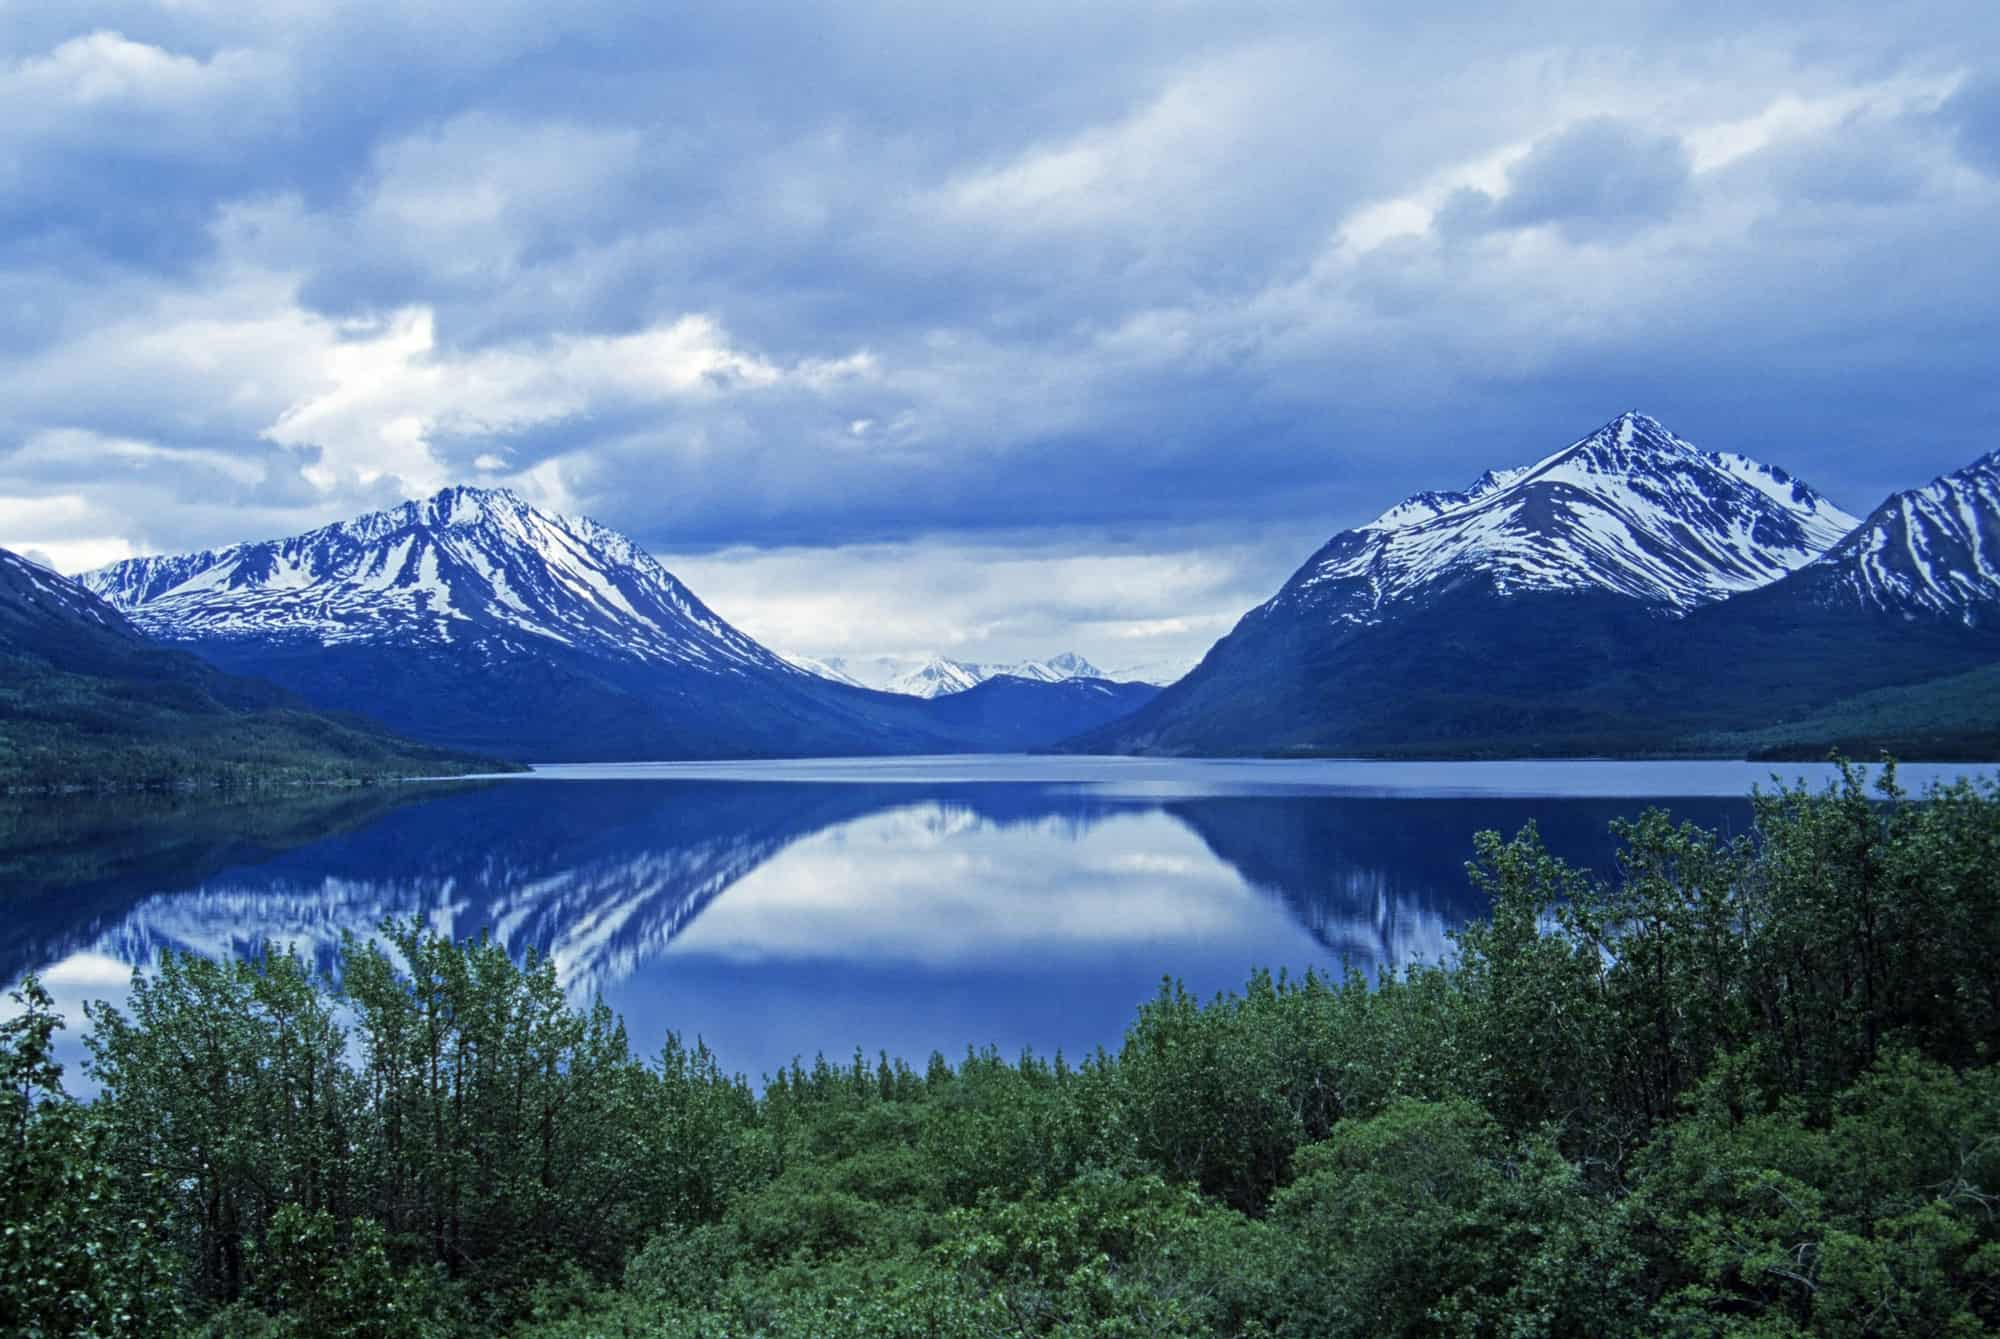 Coast Mountains (Yukon Territory, B.C.)